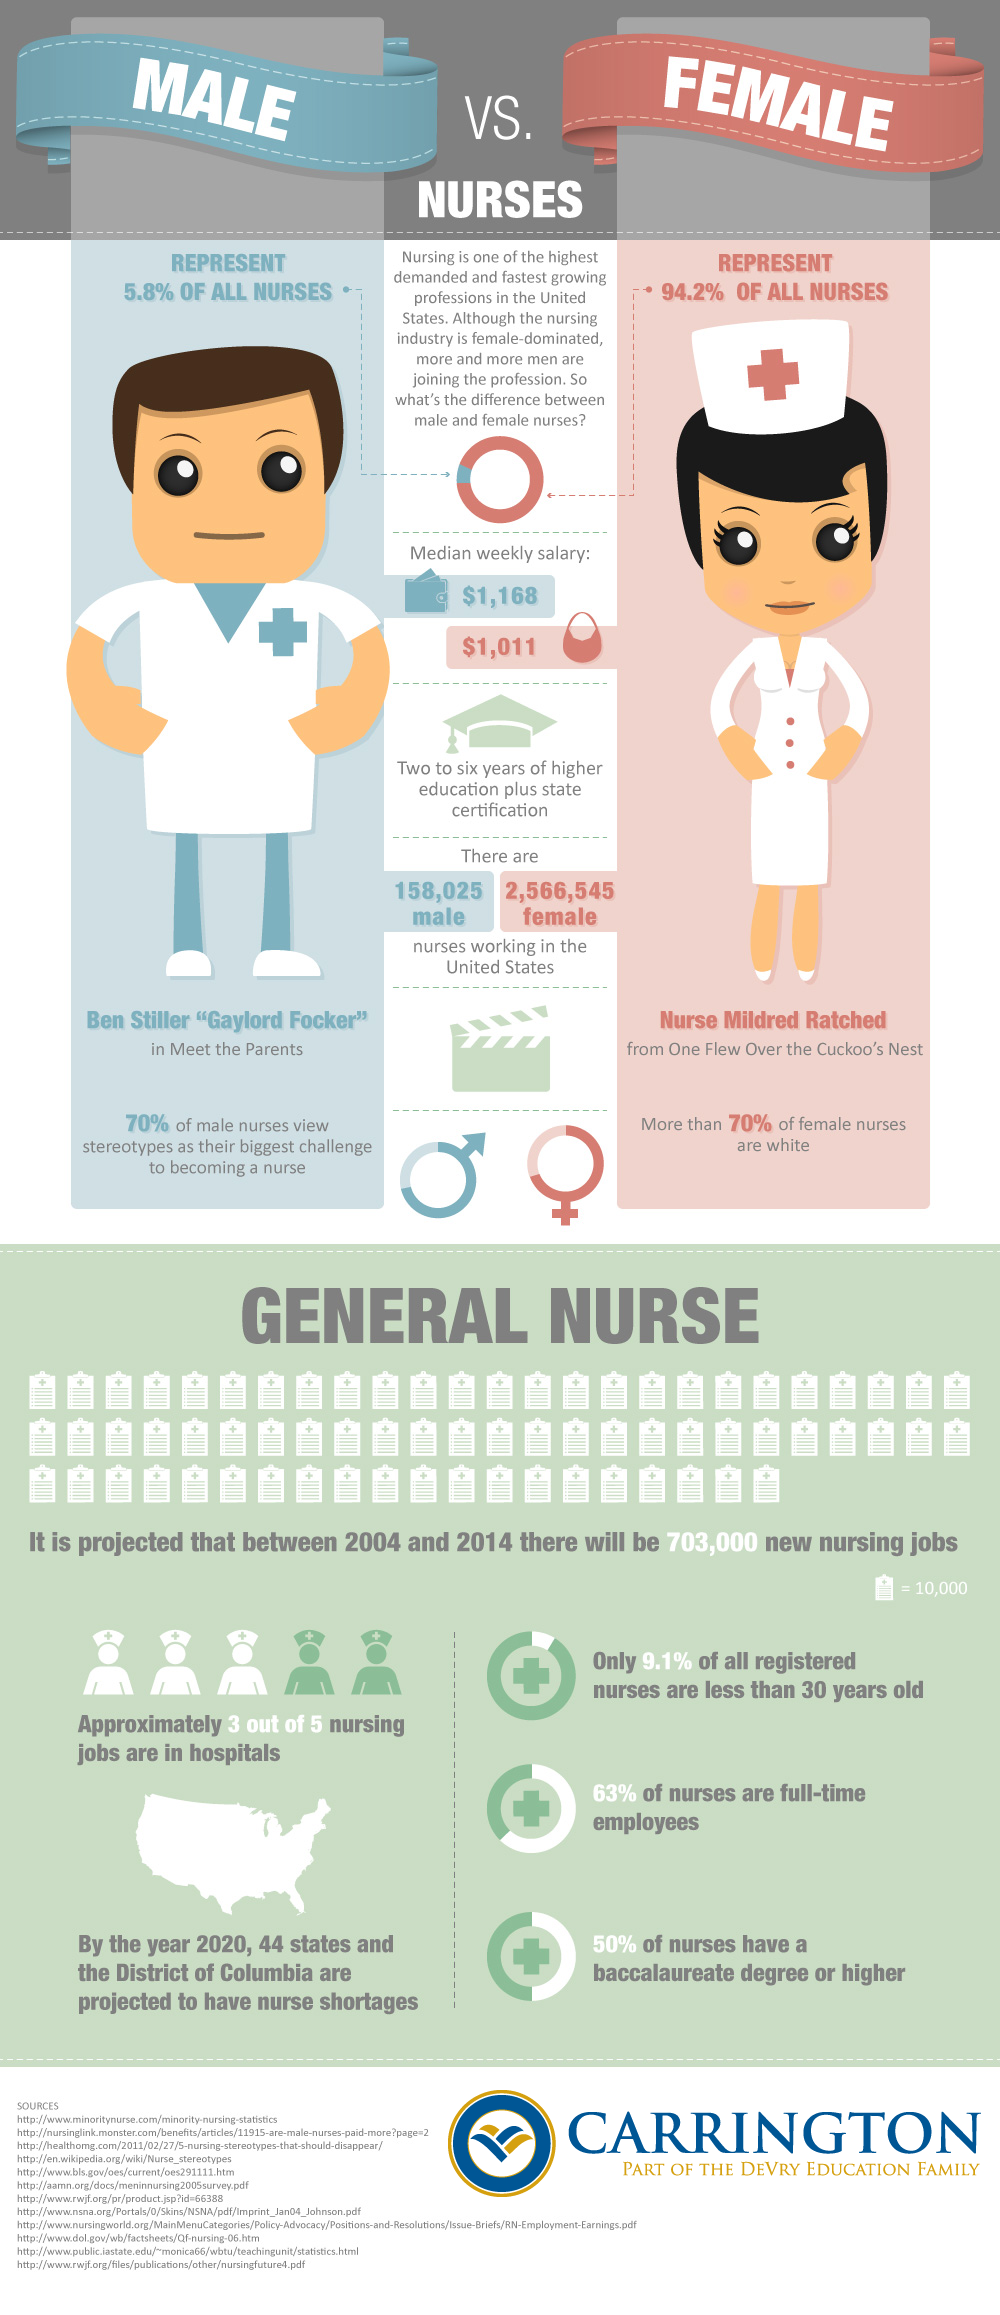 Male and Female Nurses